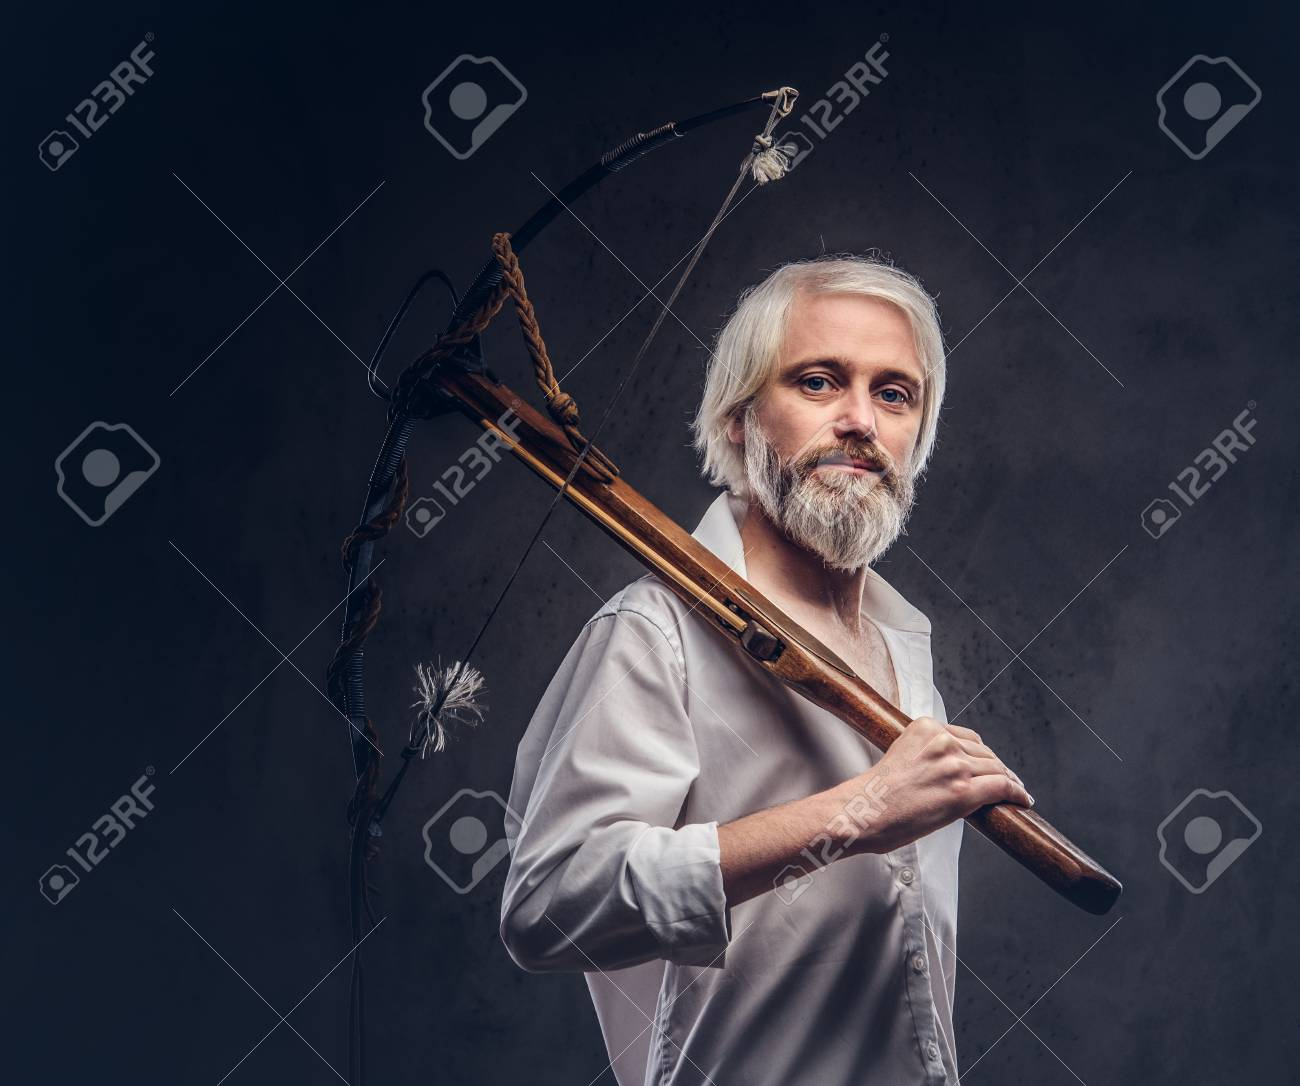 0e3bb9fb8a8 Stock Photo - Studio portrait of a smiling handsome old man with a gray  beard and white shirt holding a crossbow on shoulder.